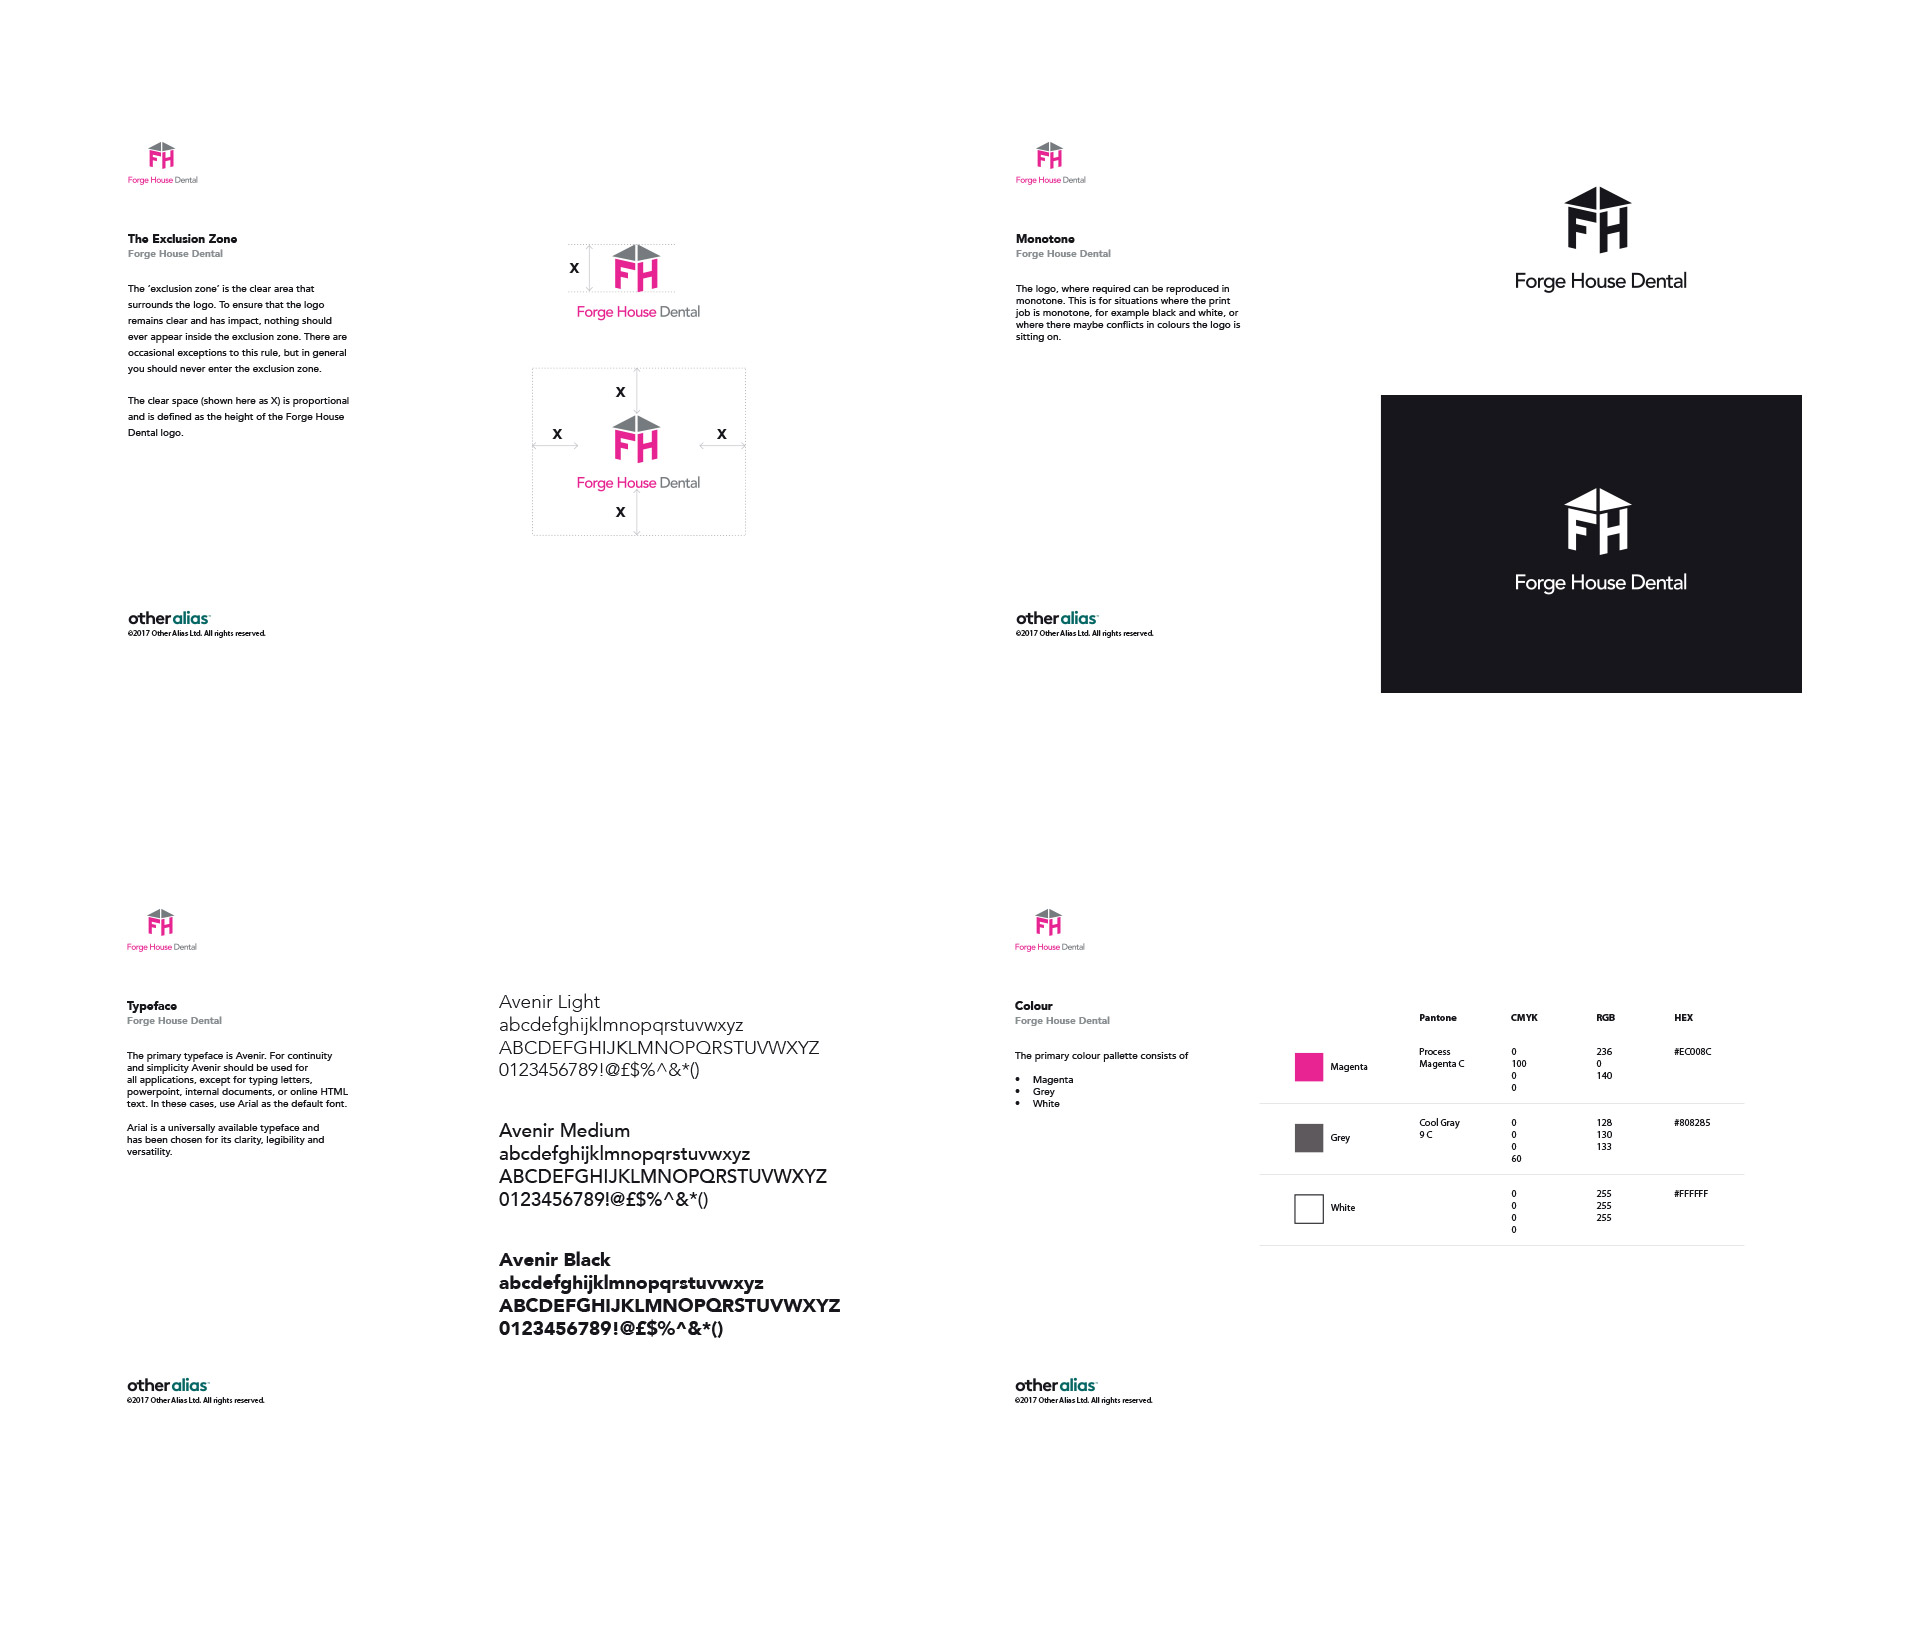 Forge House Dental Brand Guidelines